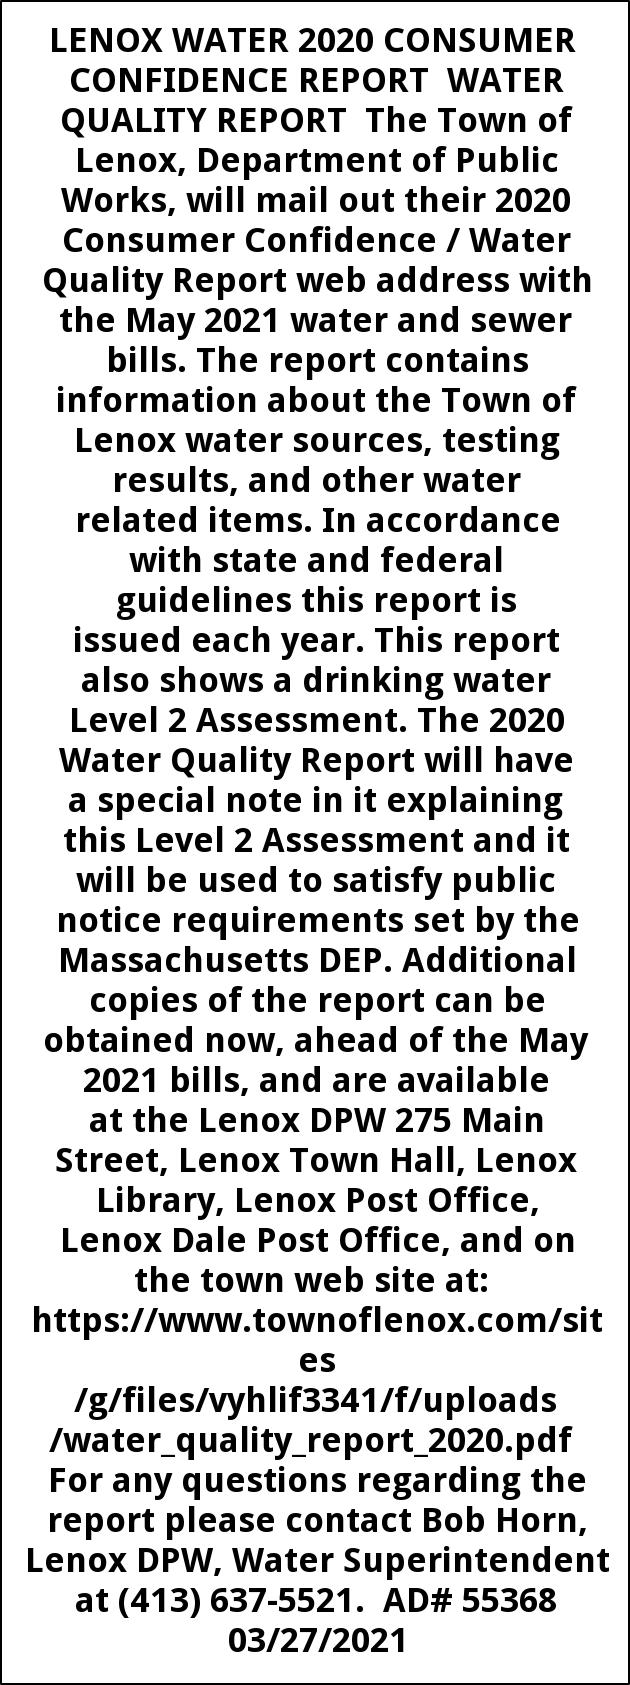 Lenox Water 2020 Consumer Confidence Report